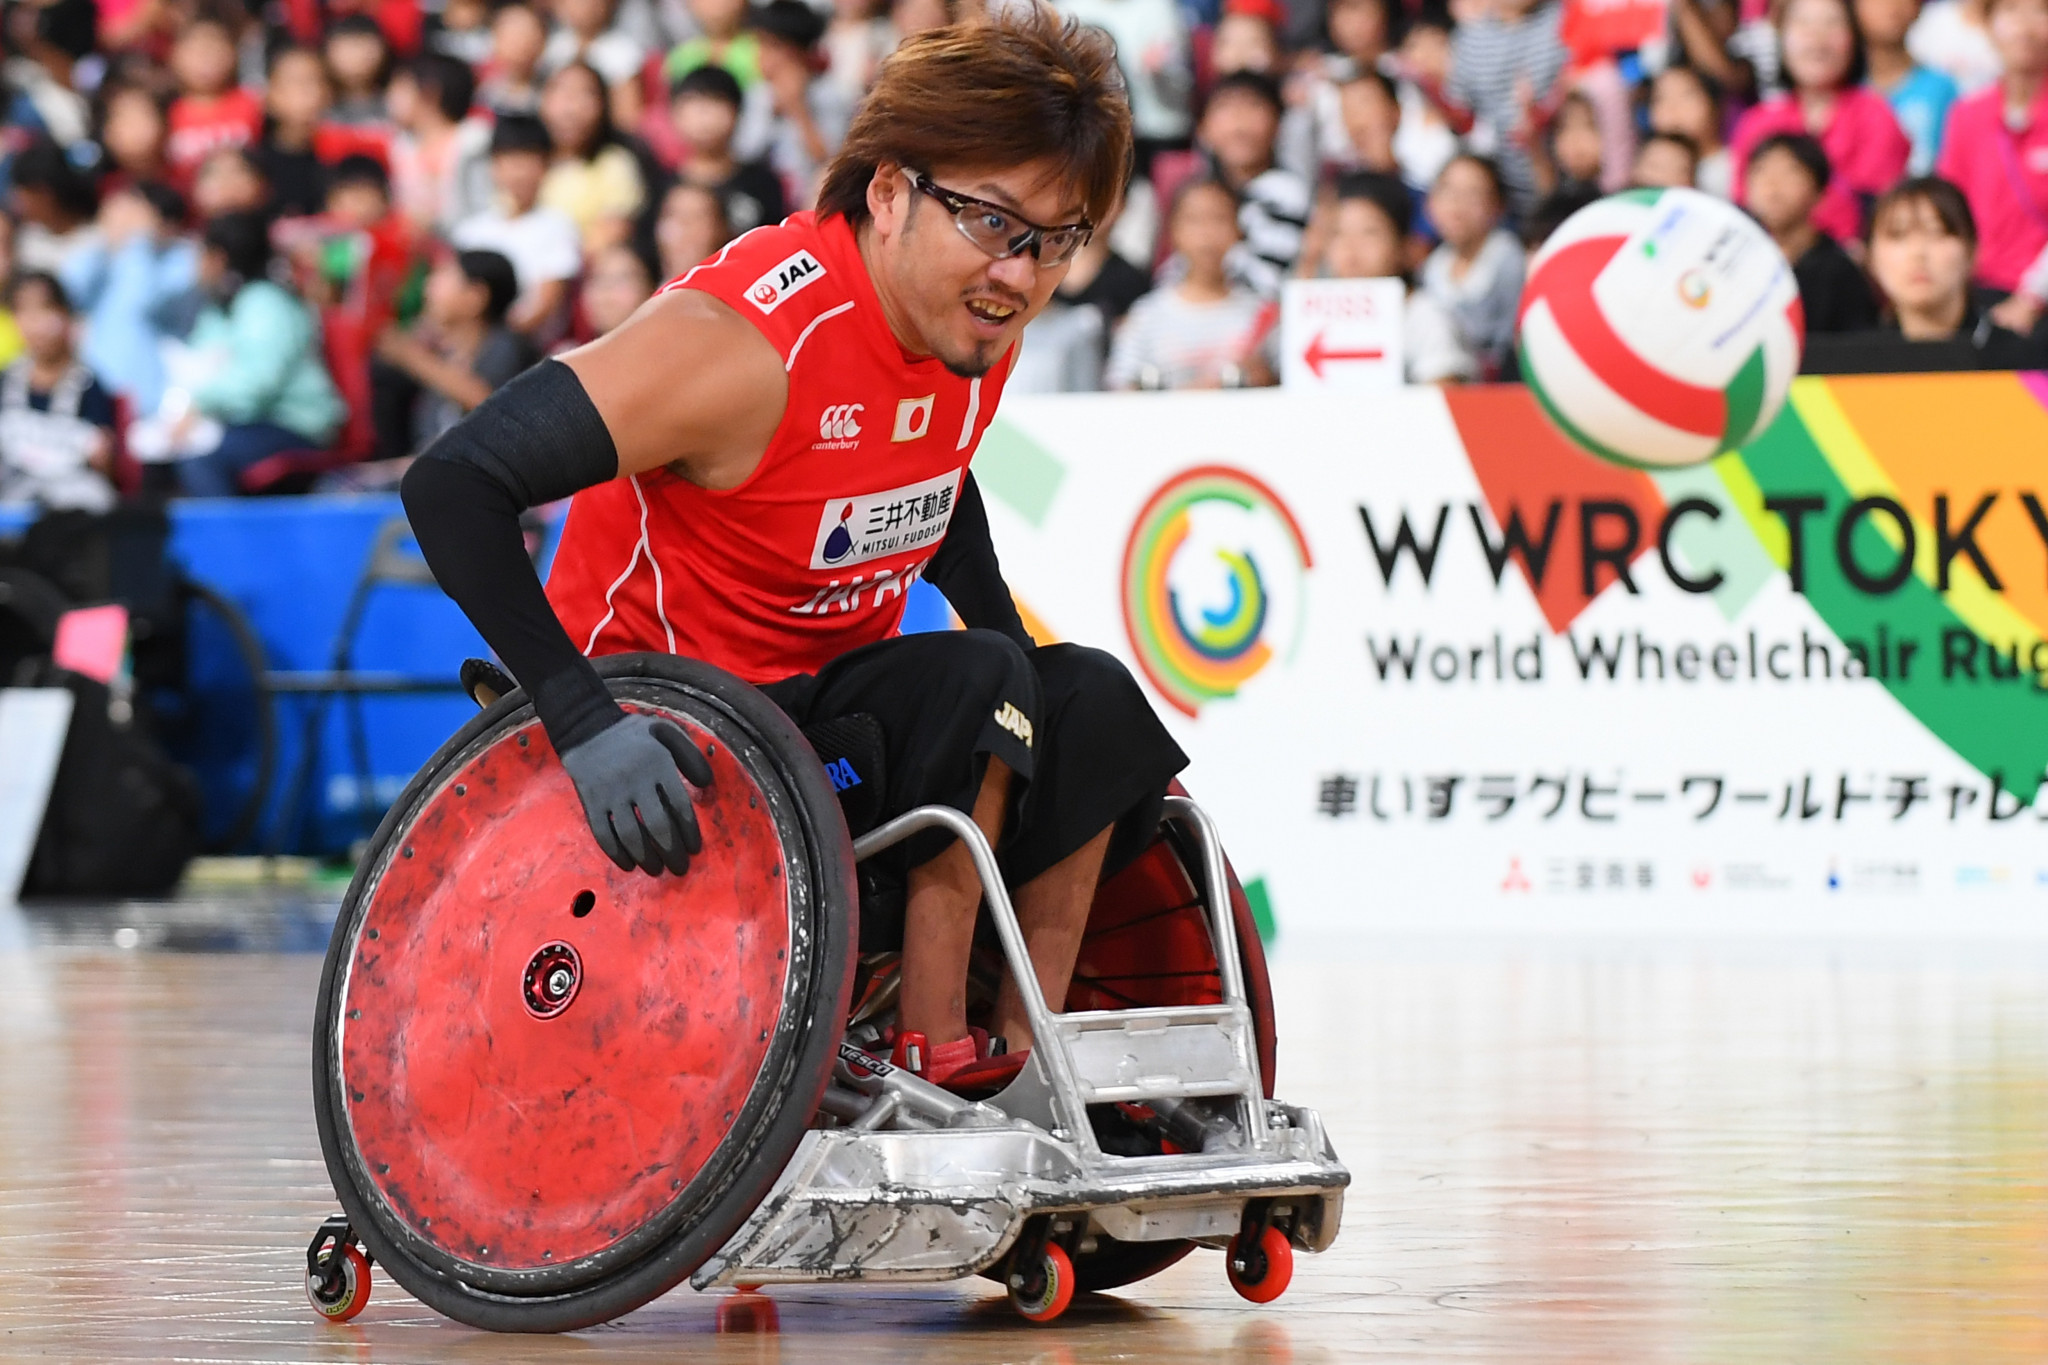 Training venue for both Olympians and Paralympians up and running in Tokyo